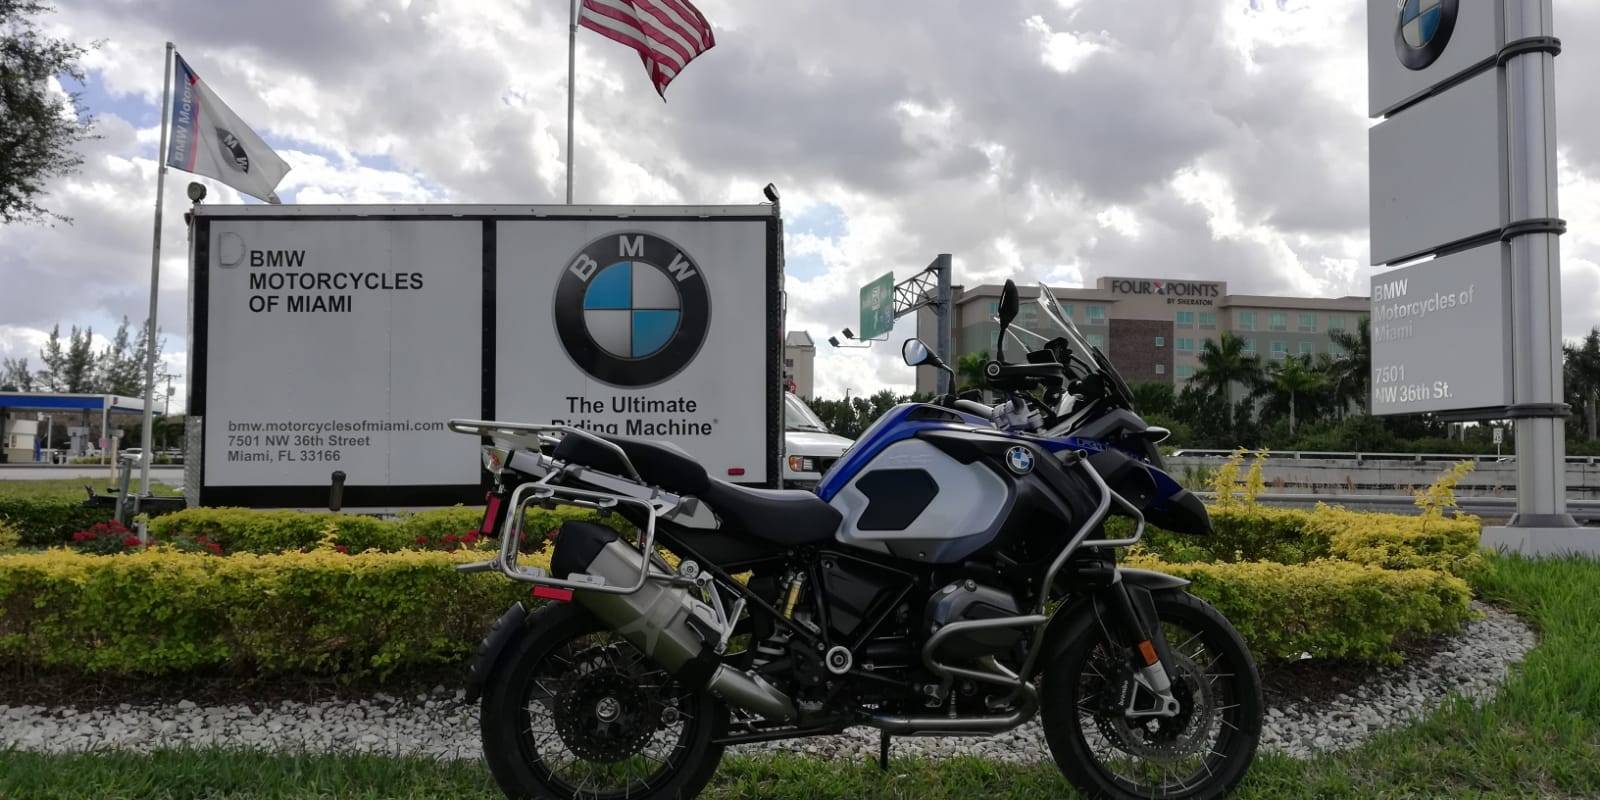 Used 2015 BMW R 1200 GSA for sale, BMW R 1200GSA for sale, BMW Motorcycle R1200GSA, used BMW Adventure, Dual, GS, BMW. BMW Motorcycles of Miami, Motorcycles of Miami, Motorcycles Miami, New Motorcycles, Used Motorcycles, pre-owned. #BMWMotorcyclesOfMiami #MotorcyclesOfMiami. - Photo 16